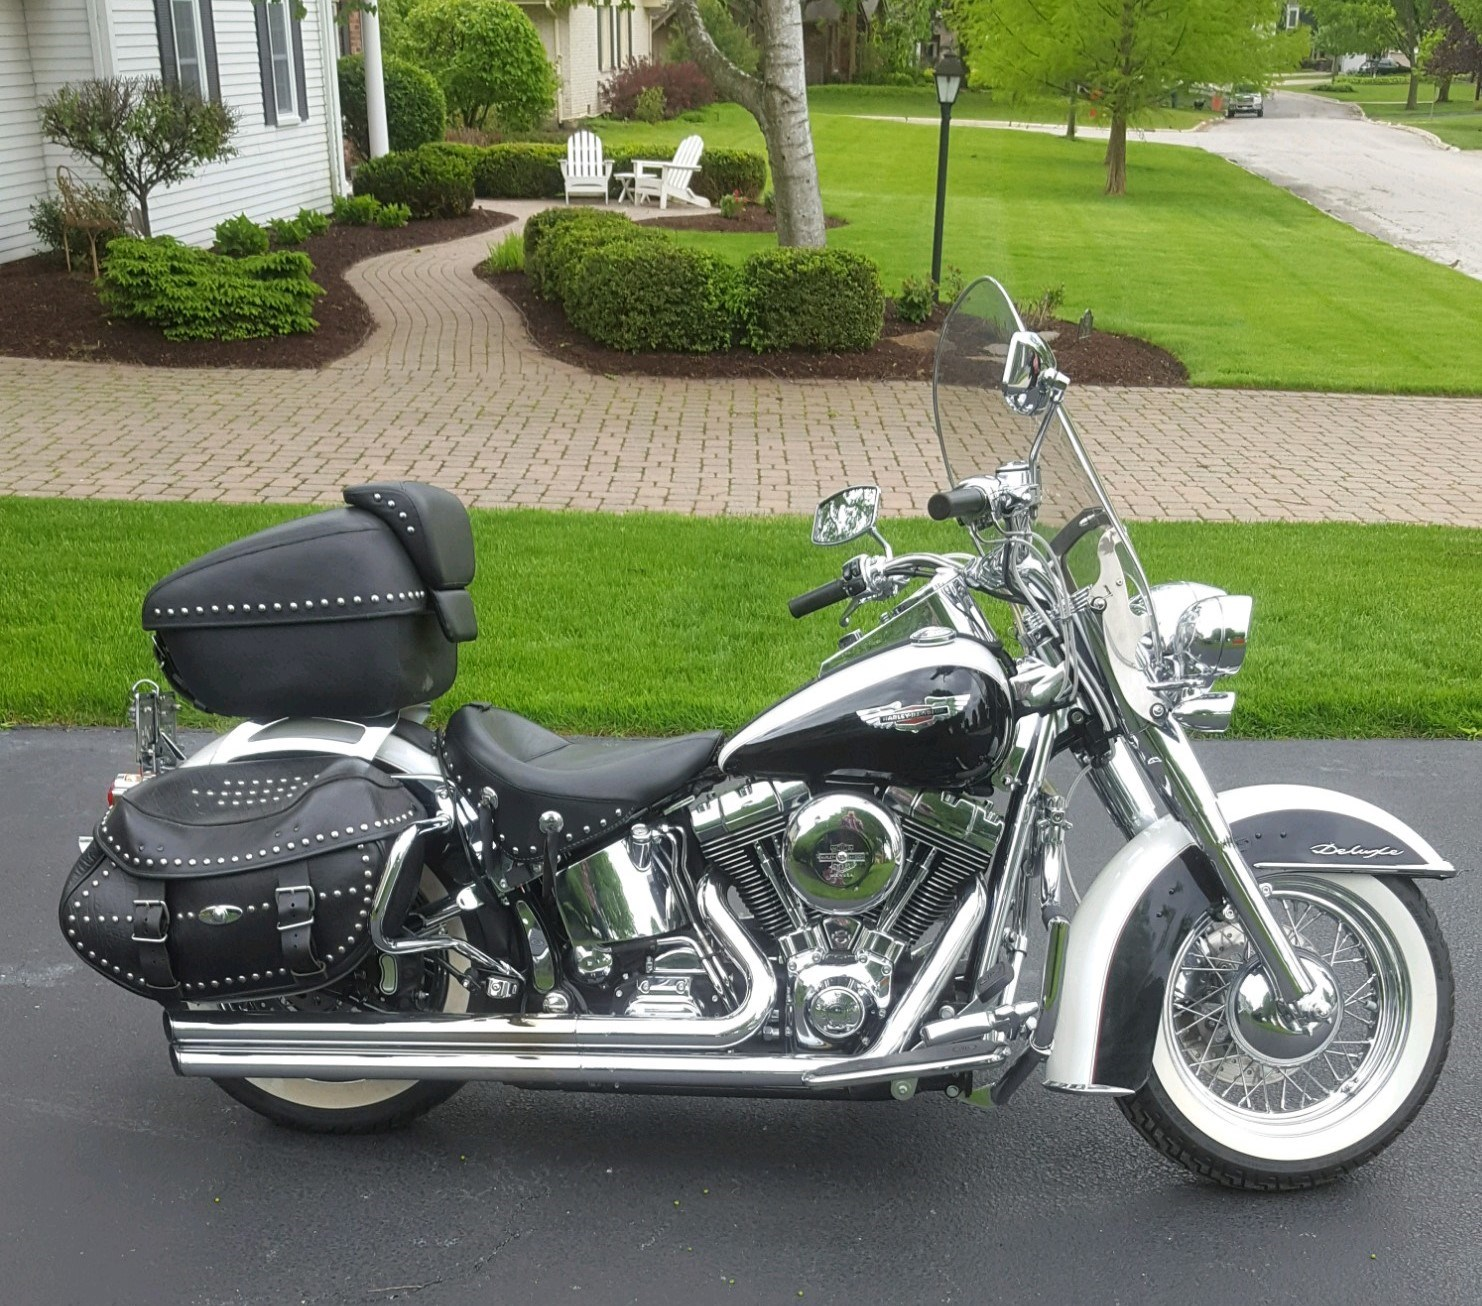 2017 Cvo For Sale Ga >> 2004 to 2009 New & Used Harley-Davidson® Softail Deluxe For Sale (107 Bikes, Page 1 ...